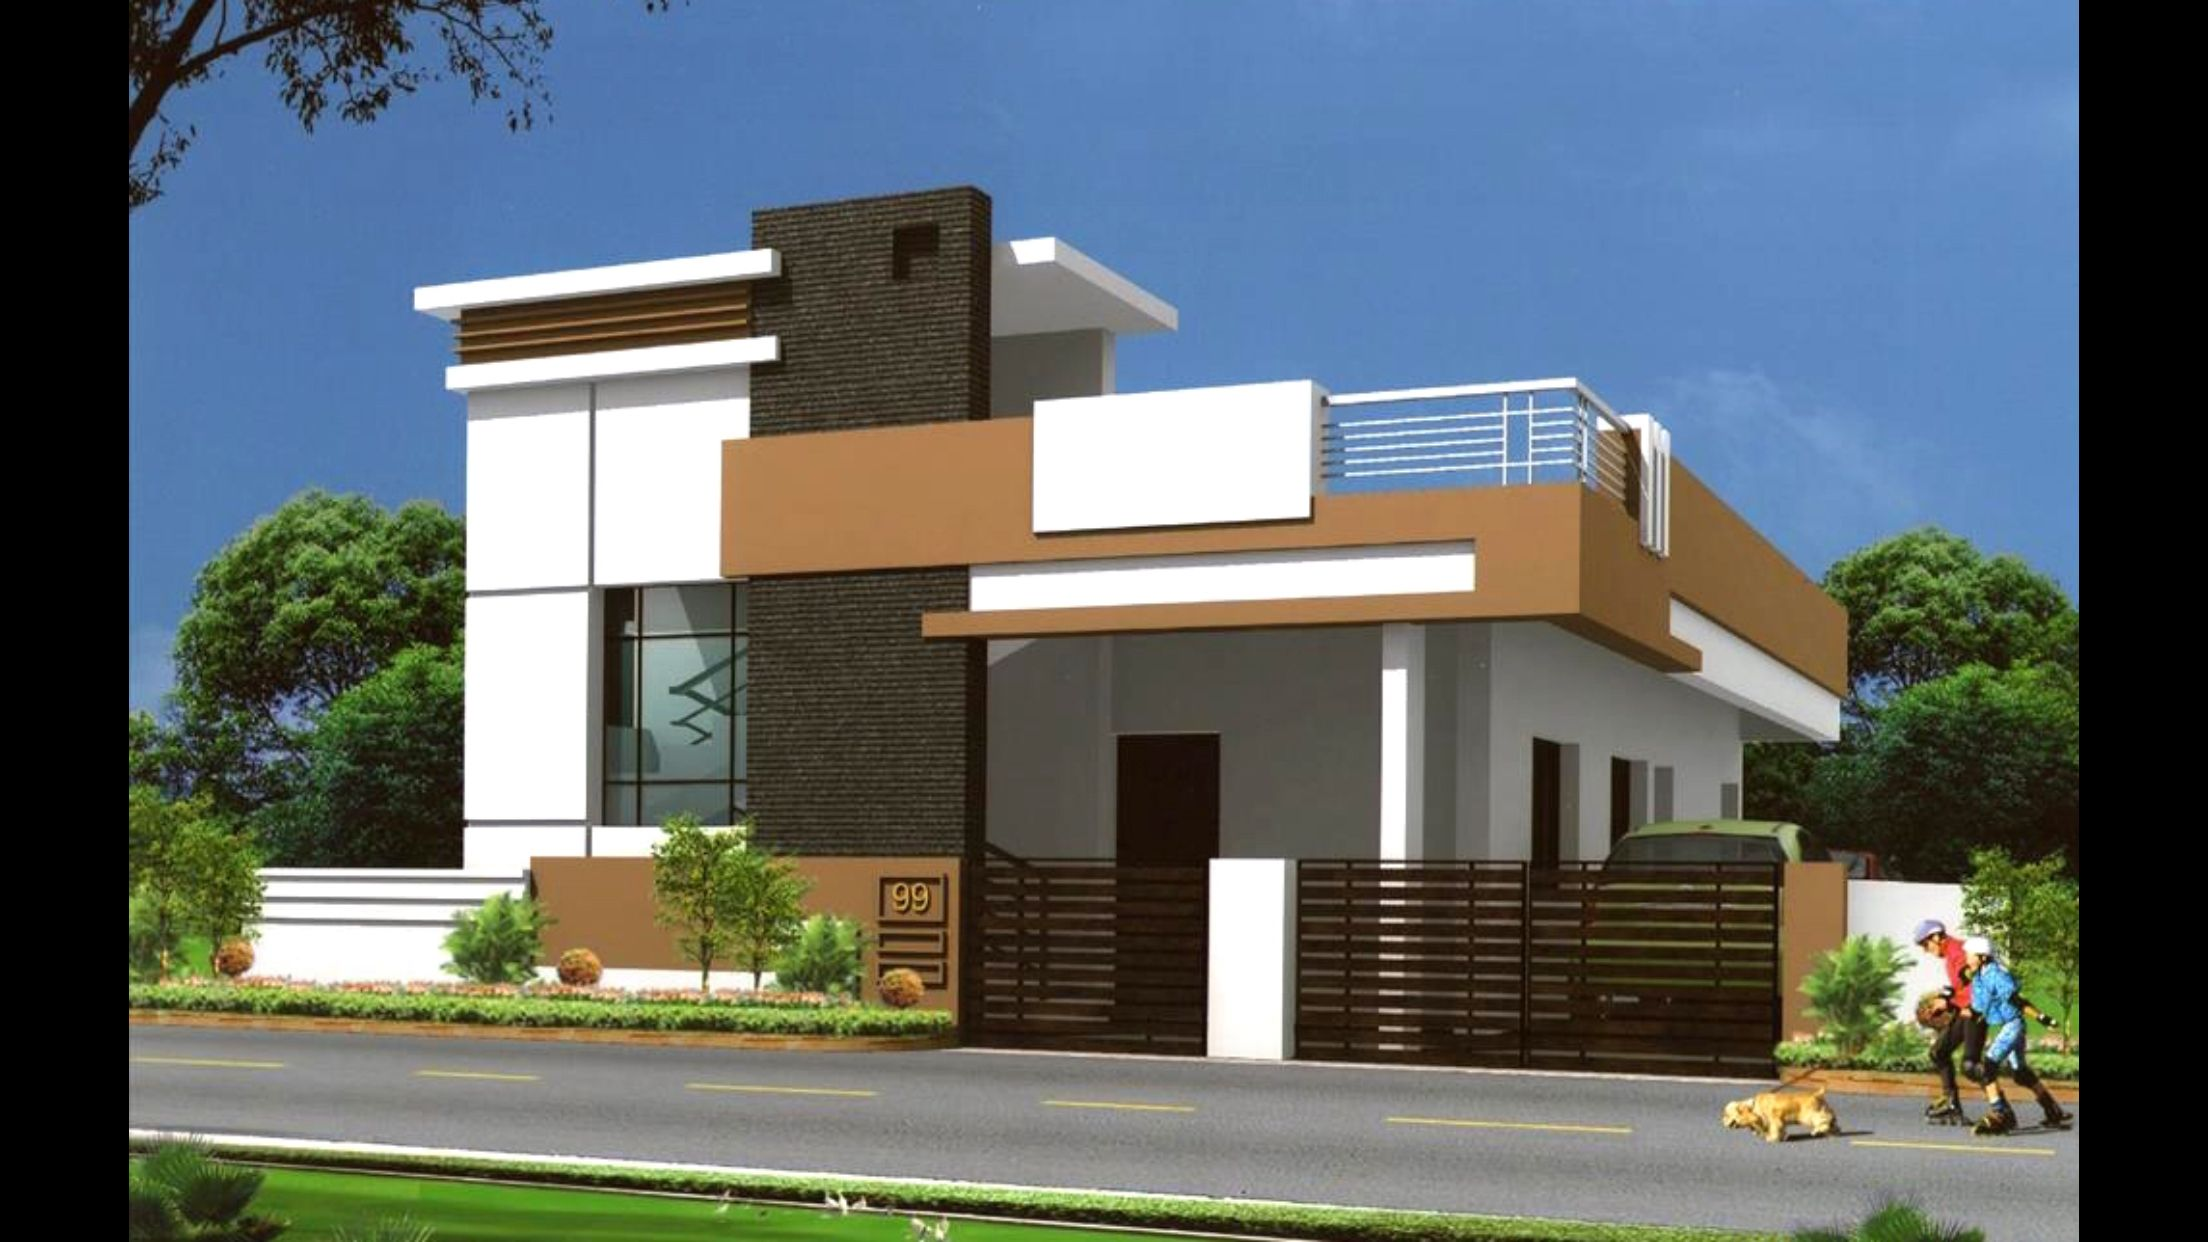 Building Front Elevation Ground Floor : Ground floor house architectural designs